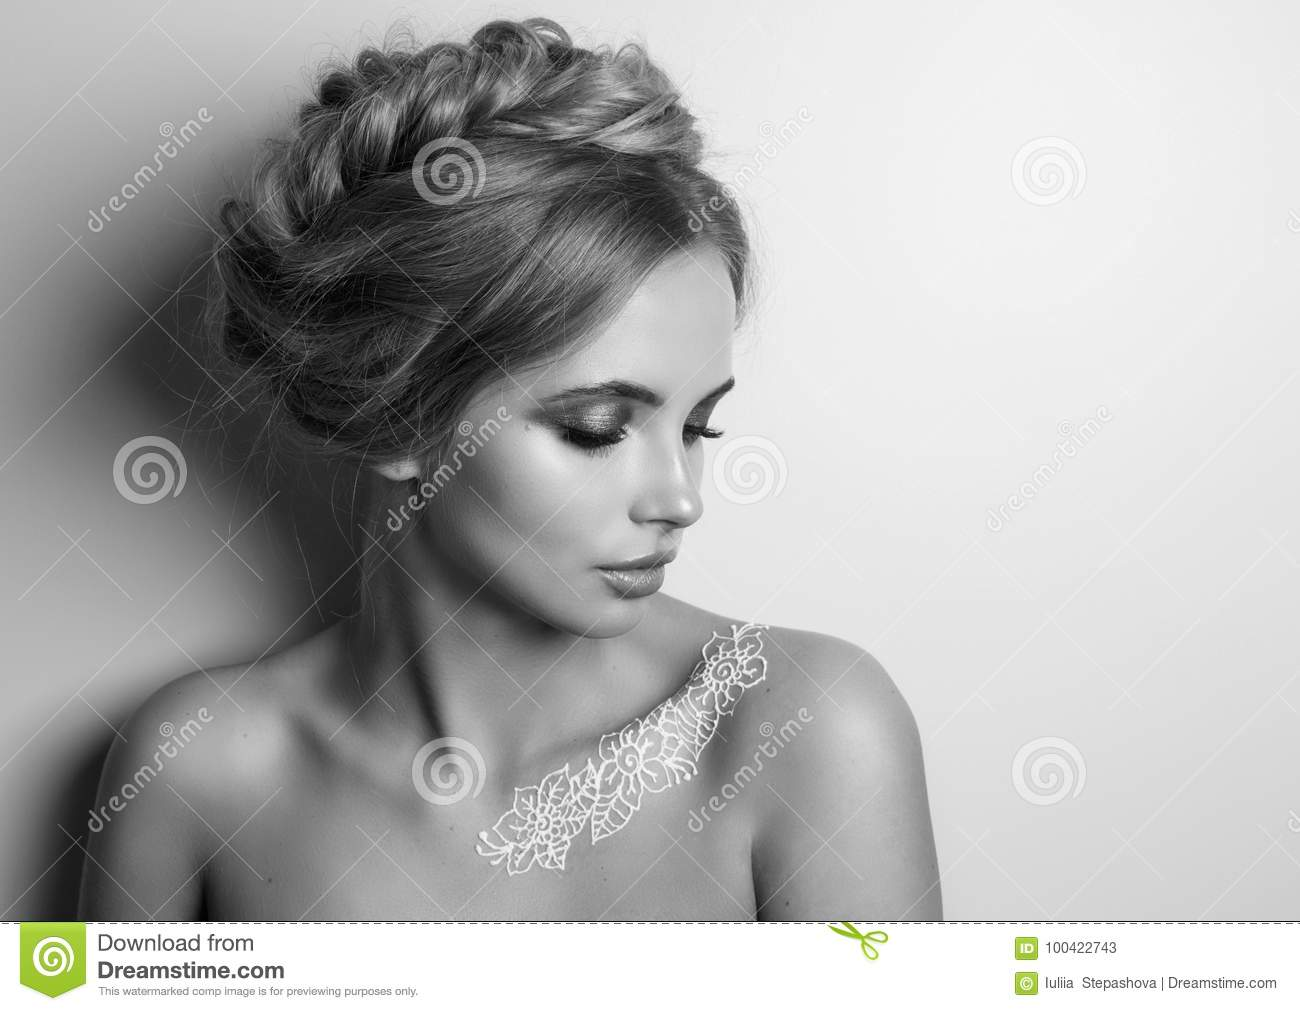 Beauty Fashion Model Woman , portrait, hairstyle with braids. Mehndi , white henna tattoo on shoulders.